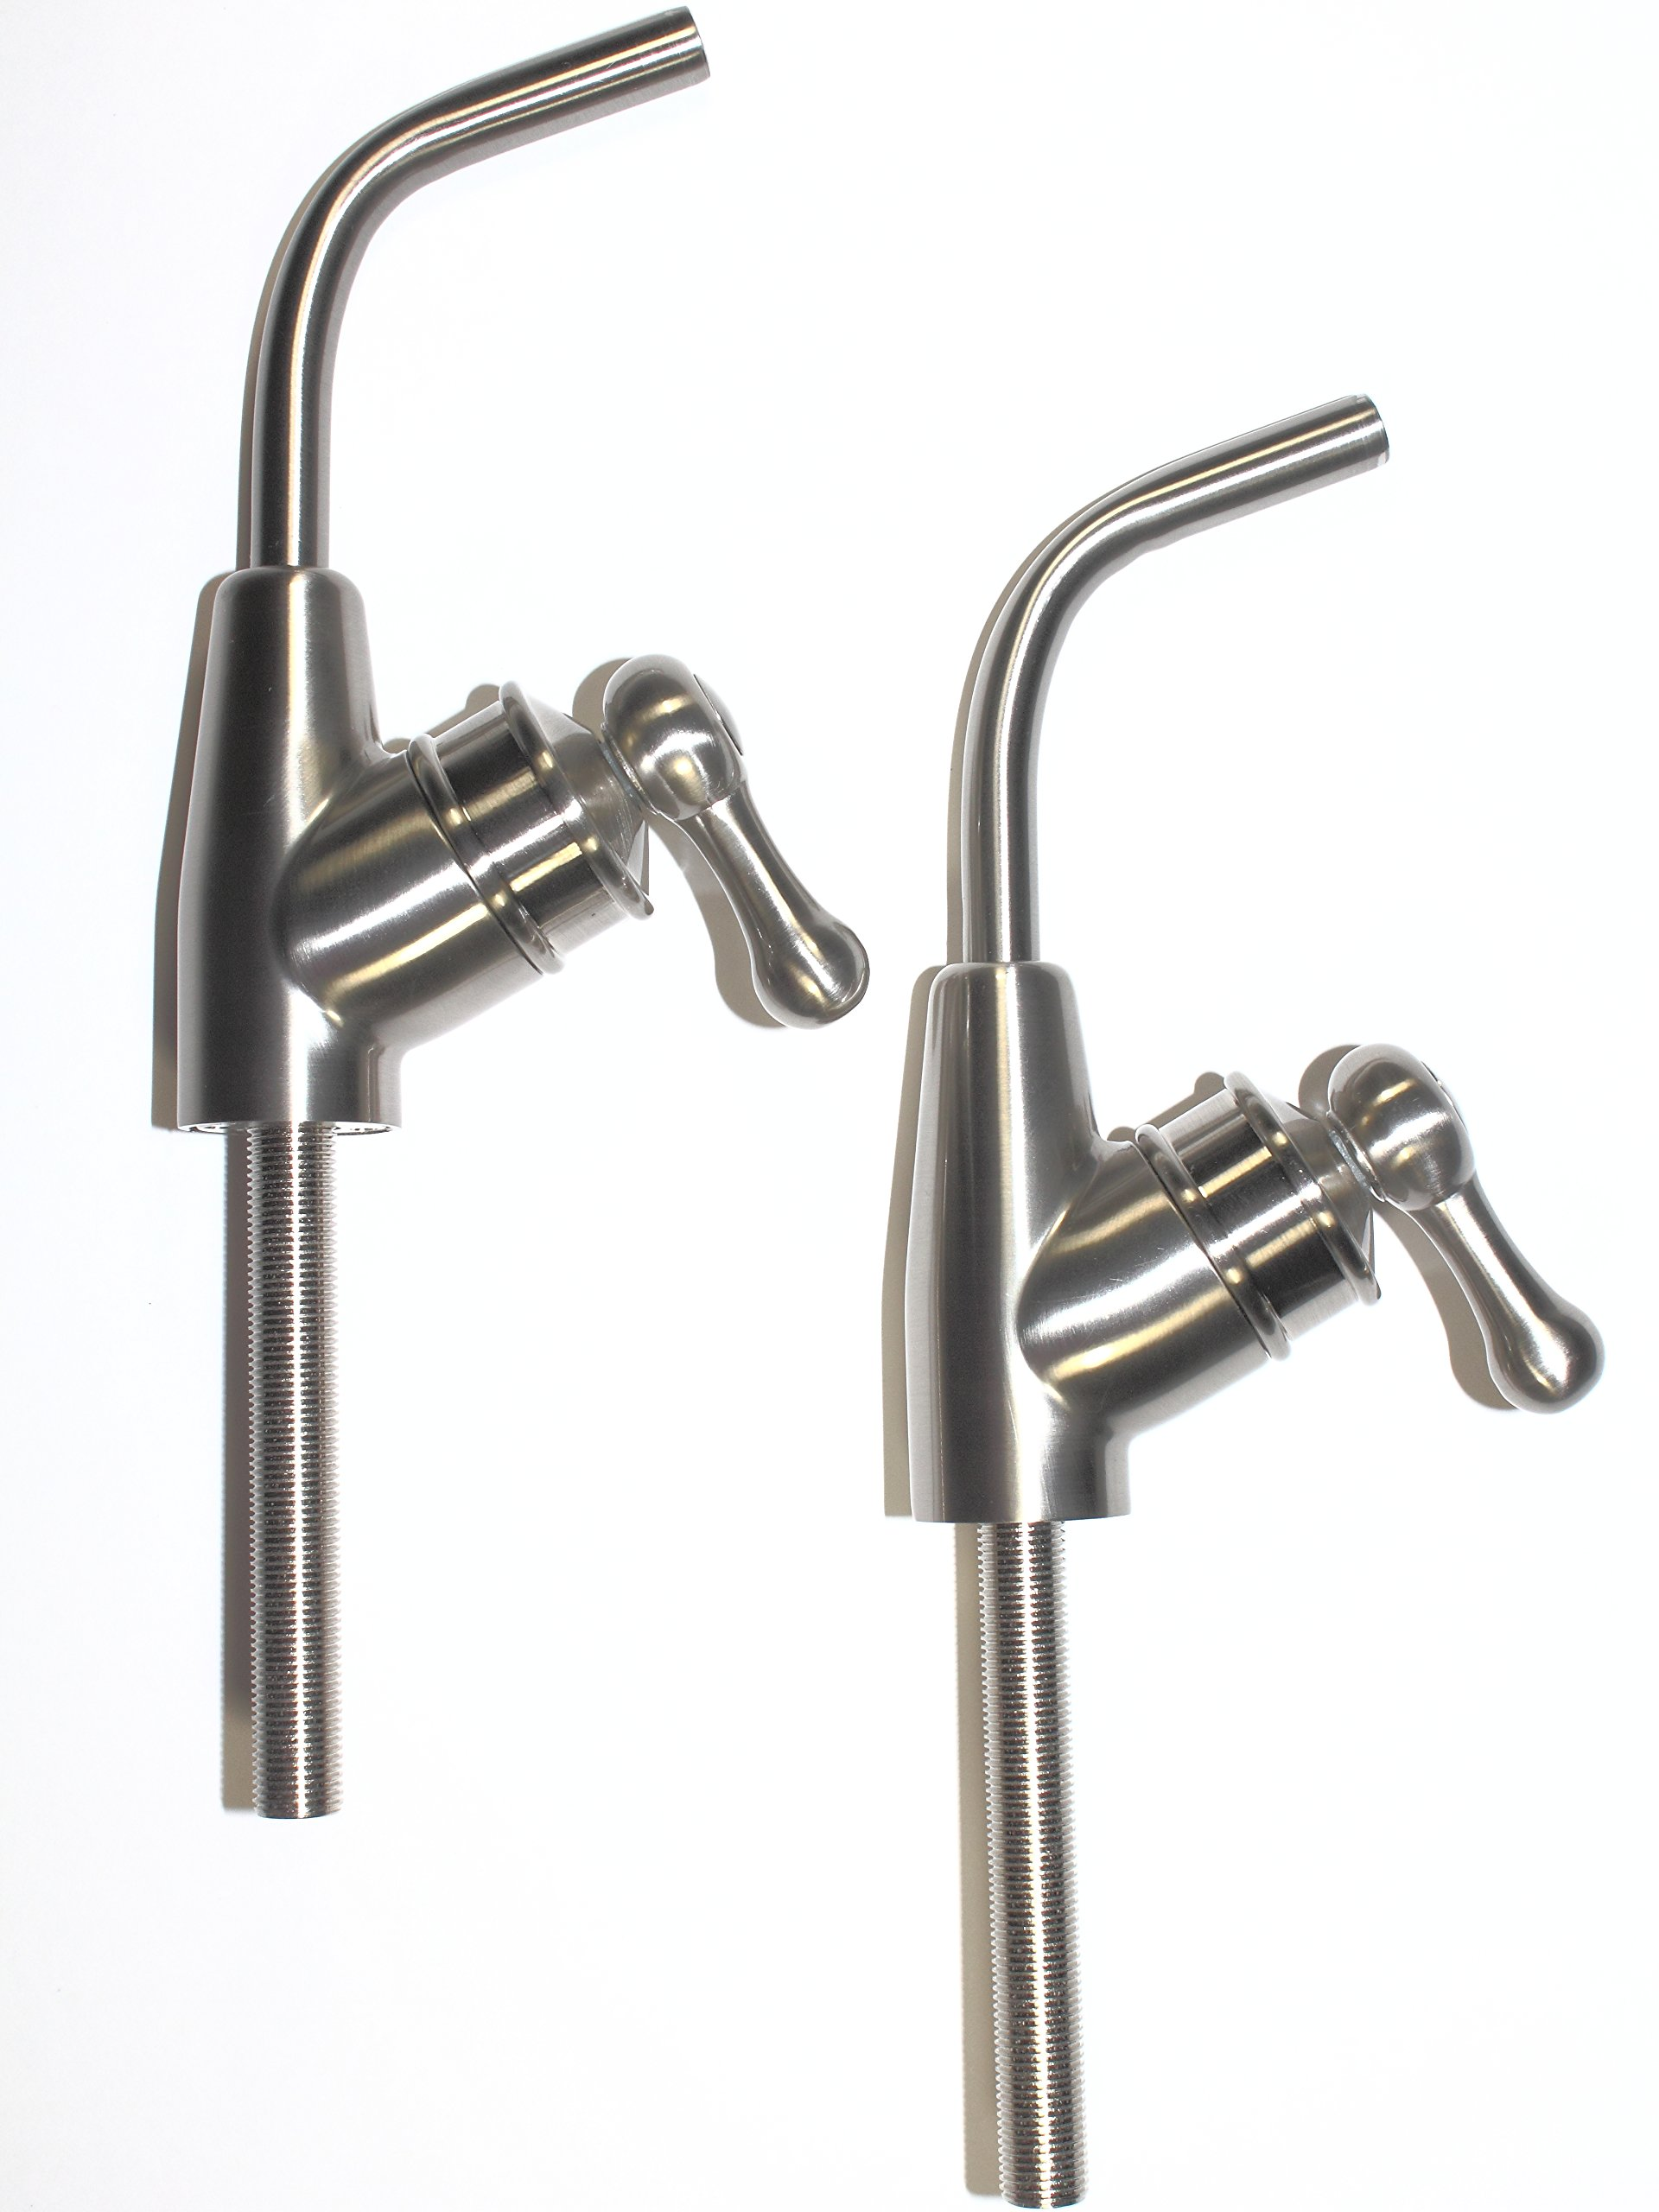 Ionizer Faucets from Todays Water Solutions offer Kangen Water Machine Owners Easy to Install Lead Free Faucet Volume Control Handle and Swivel Spout Get Rid of Your Diverter Today!